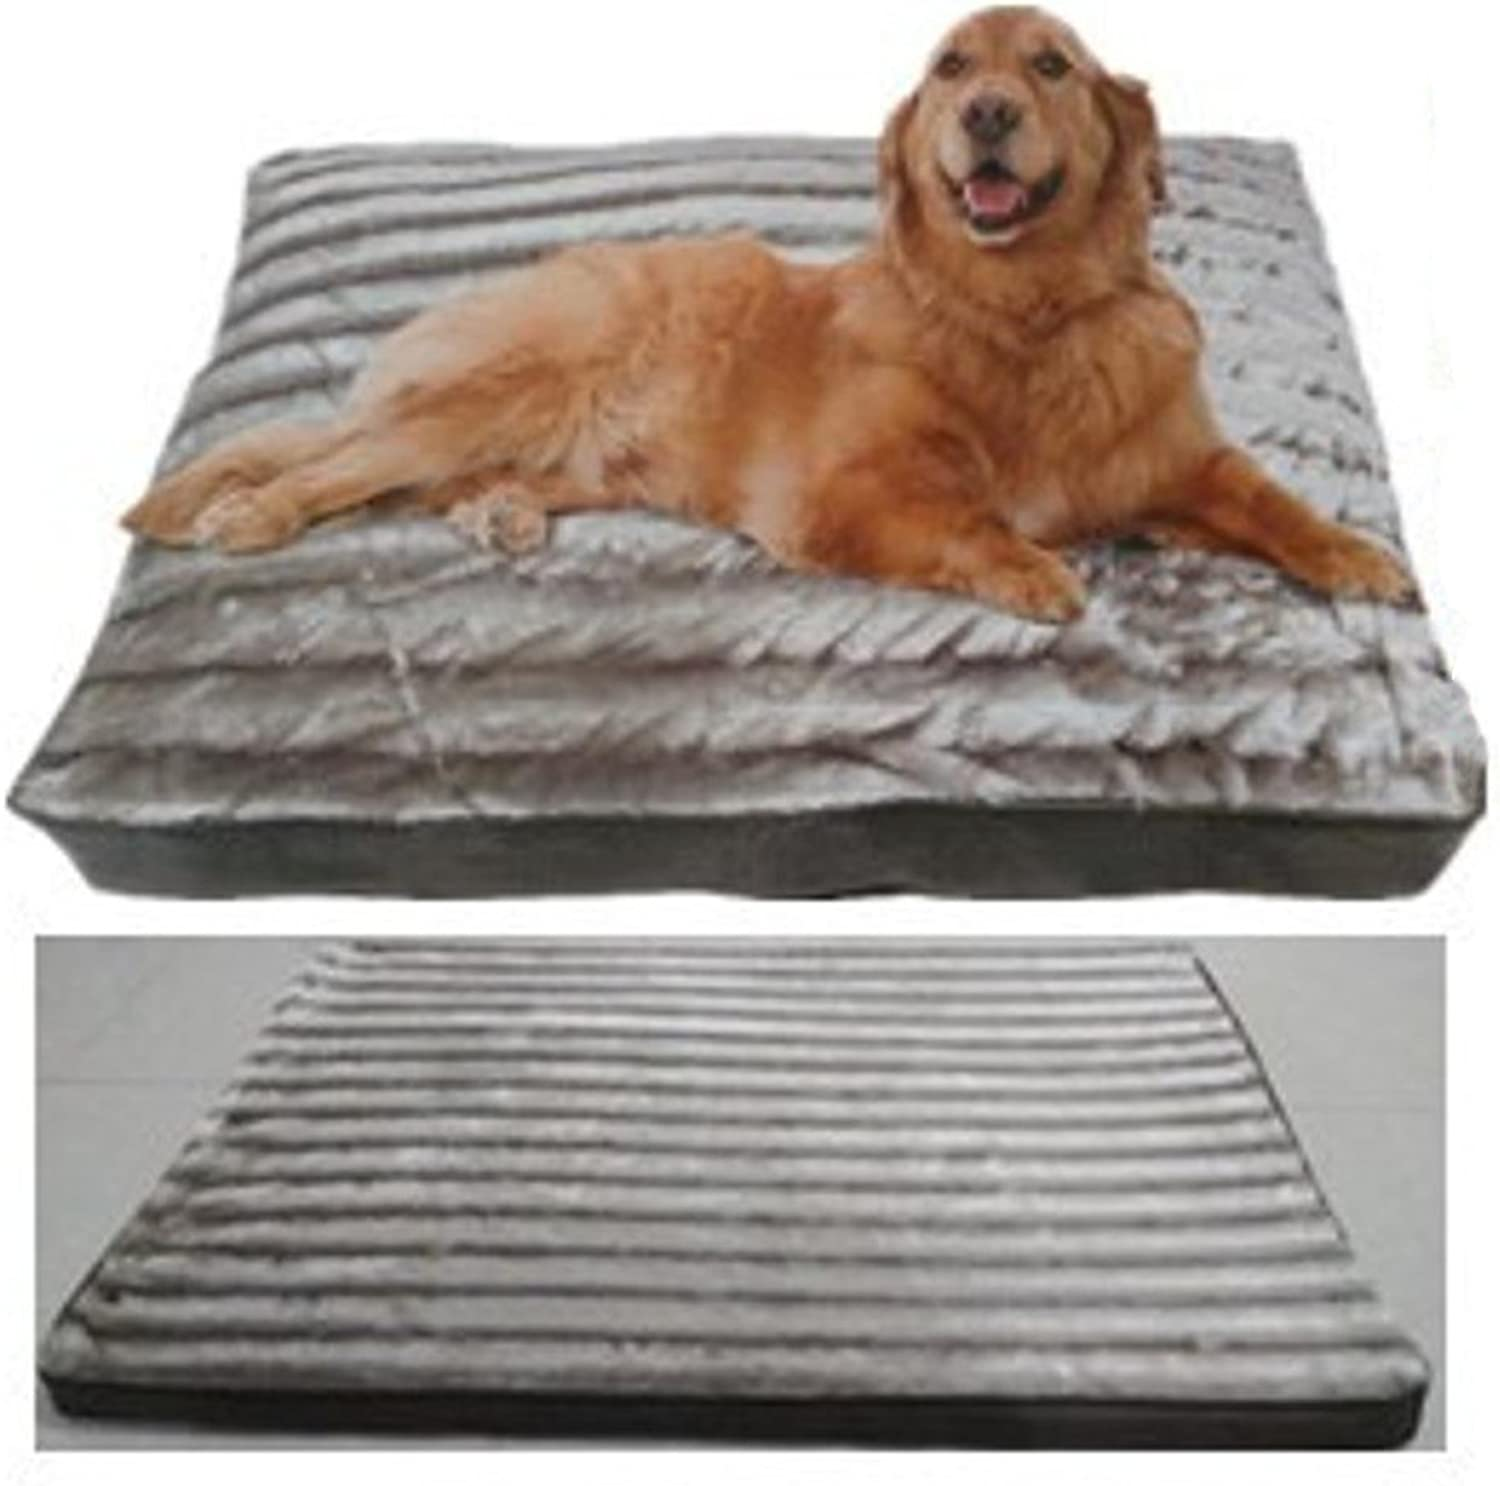 Aoligei Washable Kennel cat Litter Plush Sponge Dog mat, 100x70x6cm Perfect for Sunbathing mat, nap&Sleeping Bed